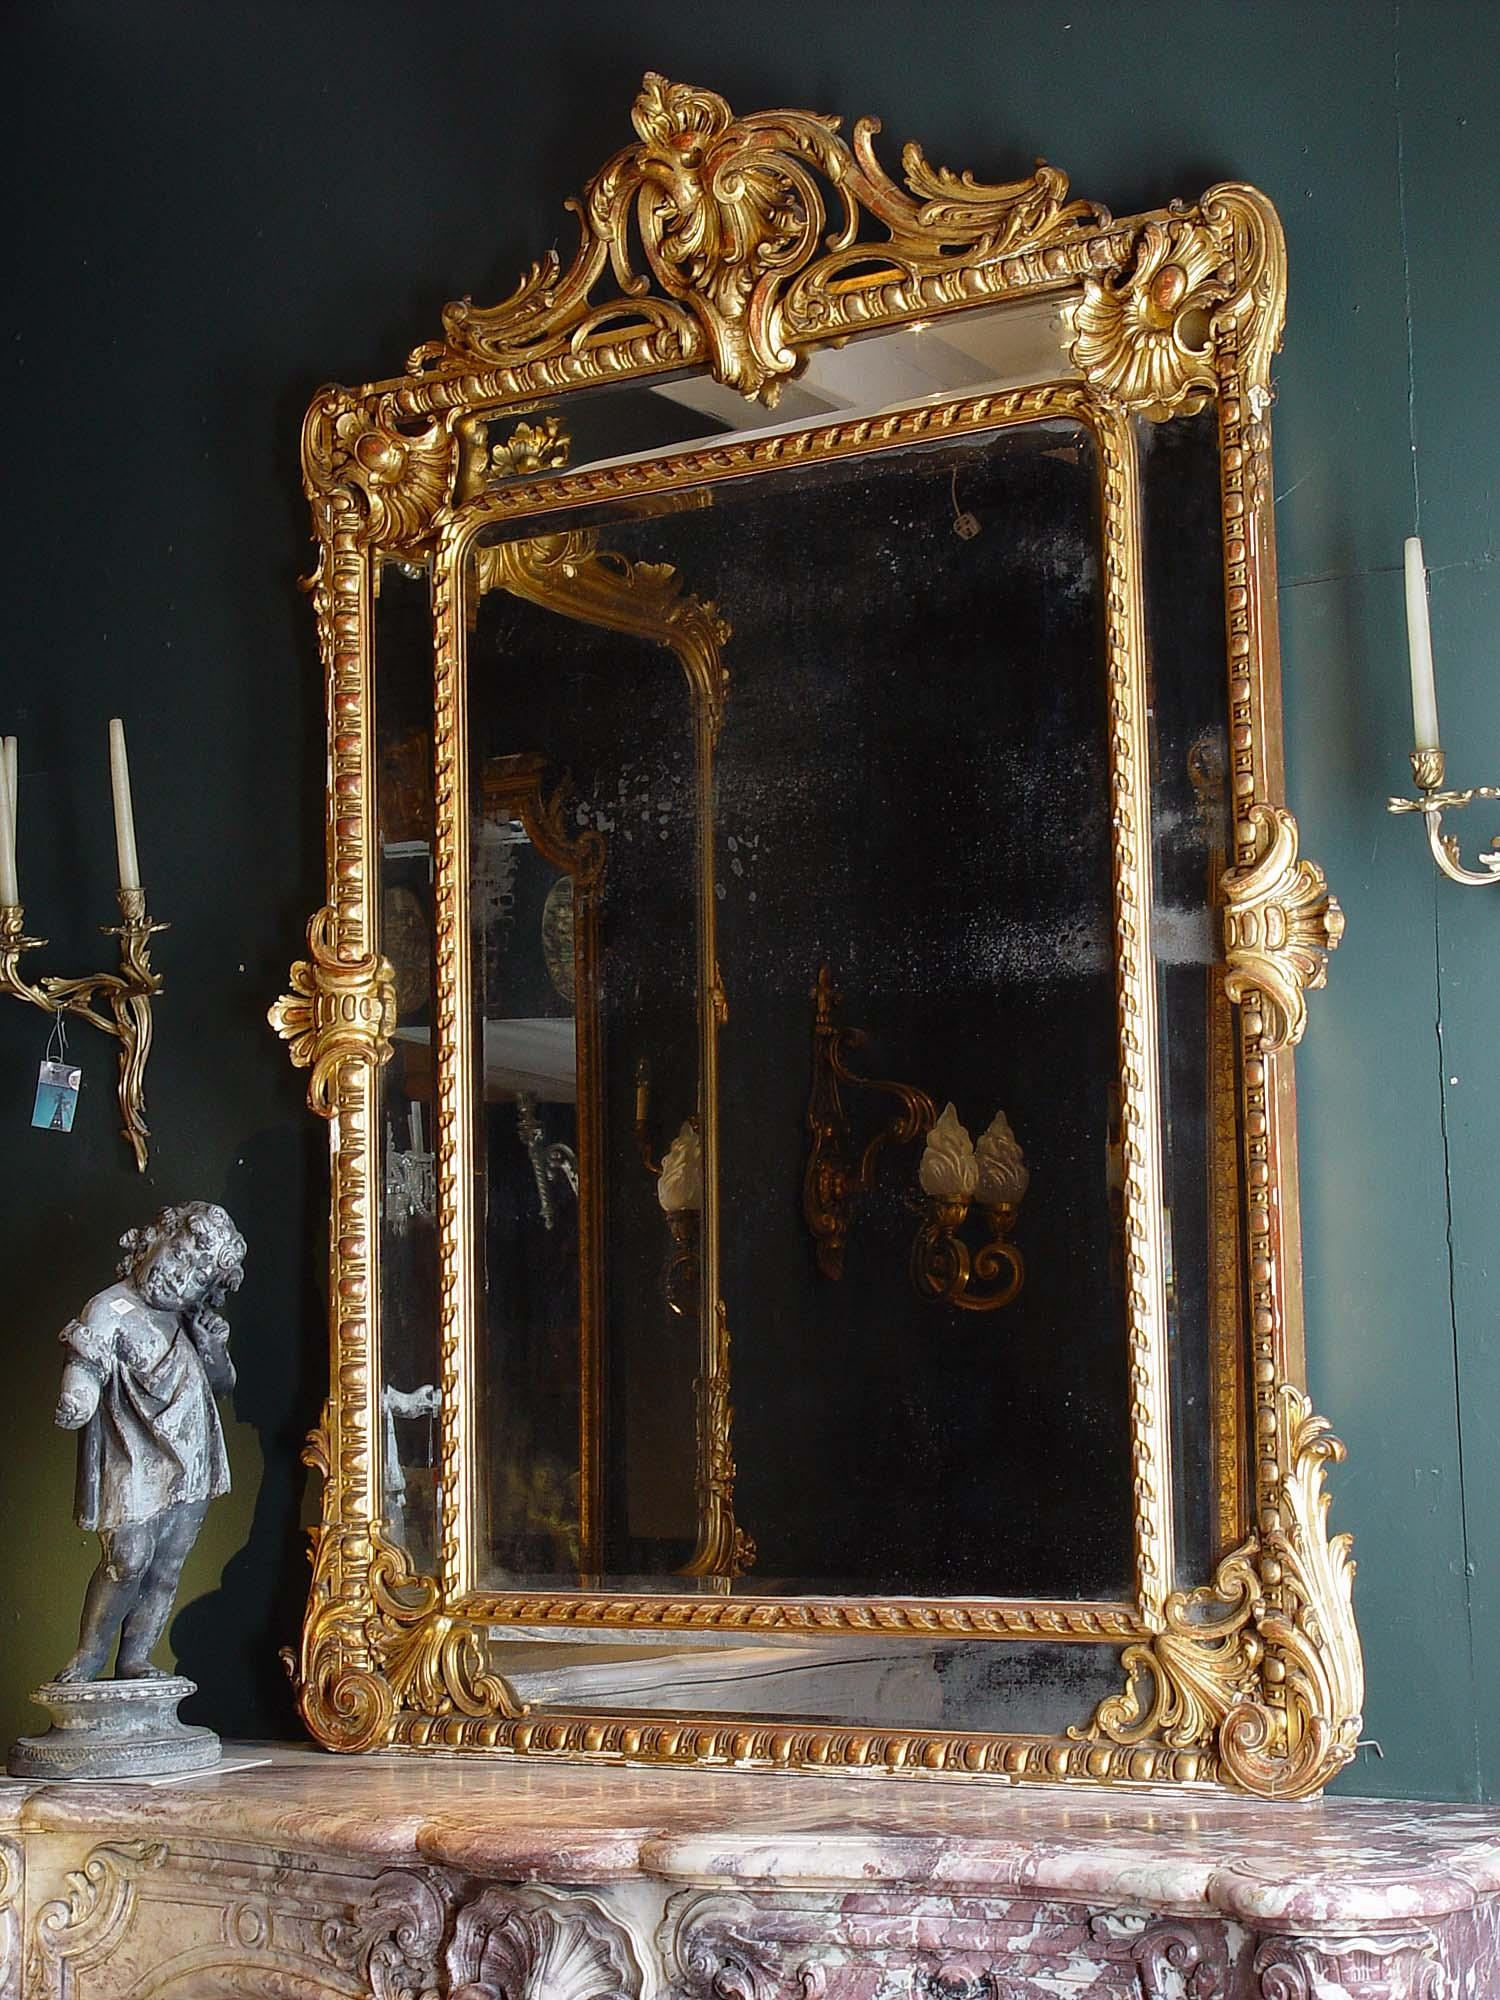 Big Mirrors For Sale 103 Trendy Interior Or Large Gold Very Ornate Intended For Big Antique Mirrors (Image 14 of 20)